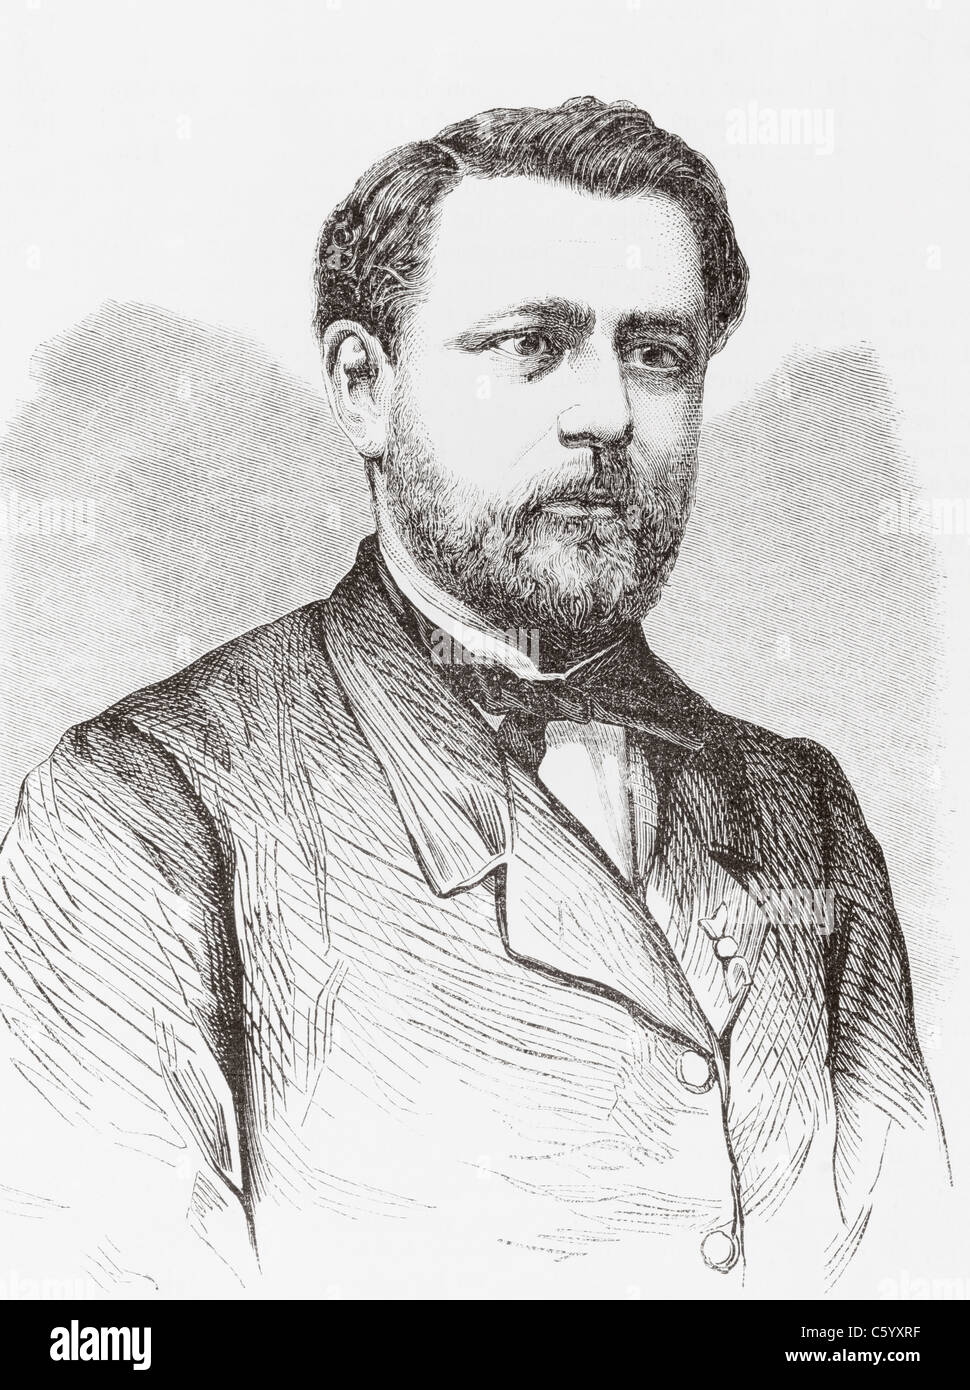 Claudius Chervin, 1824-1896. French specialist in speech impediments. - Stock Image